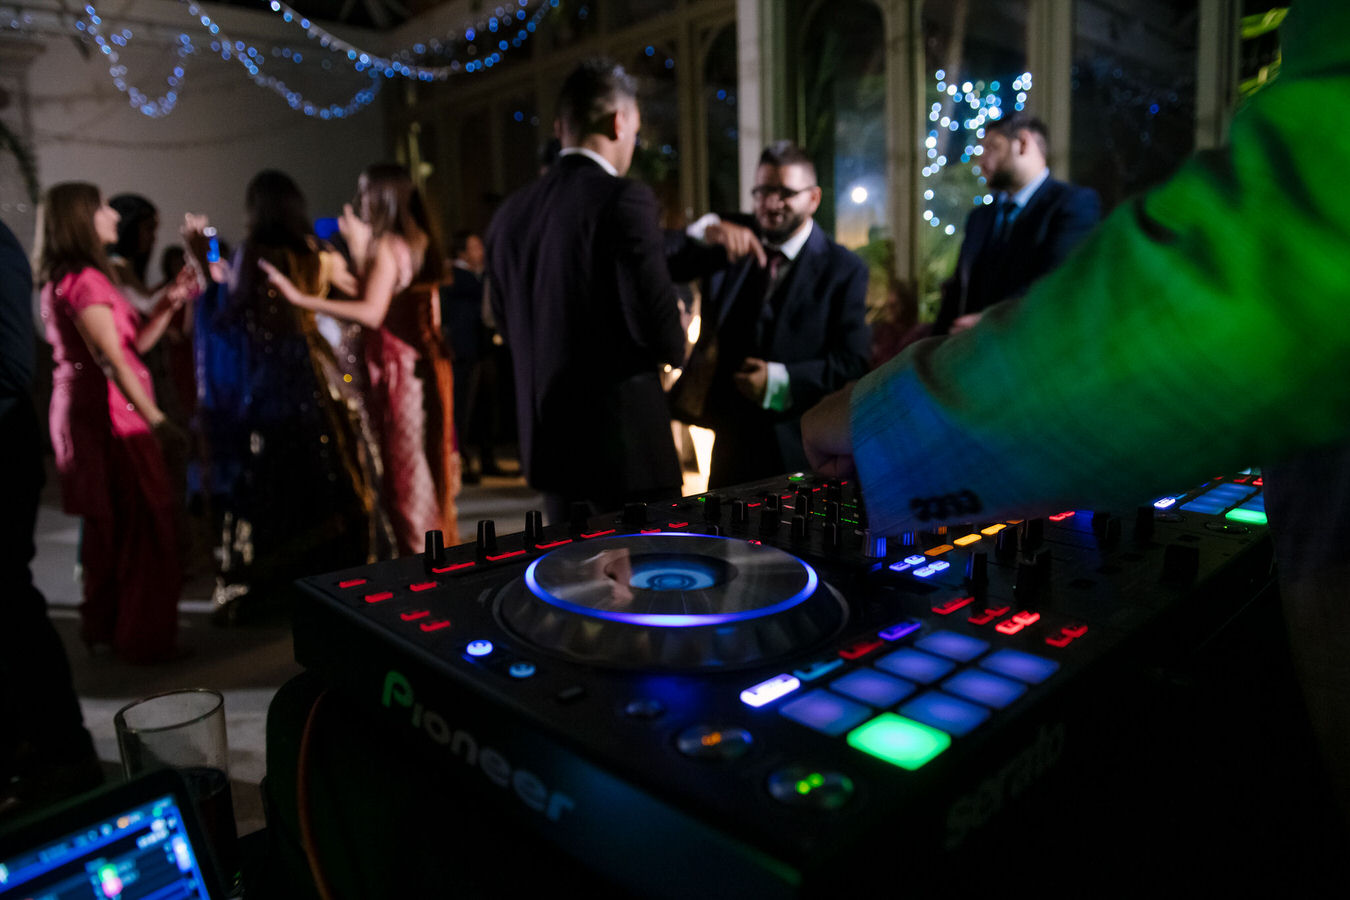 Sikh Asian wedding Dj mixes the music for the party so everyone enjoys himself